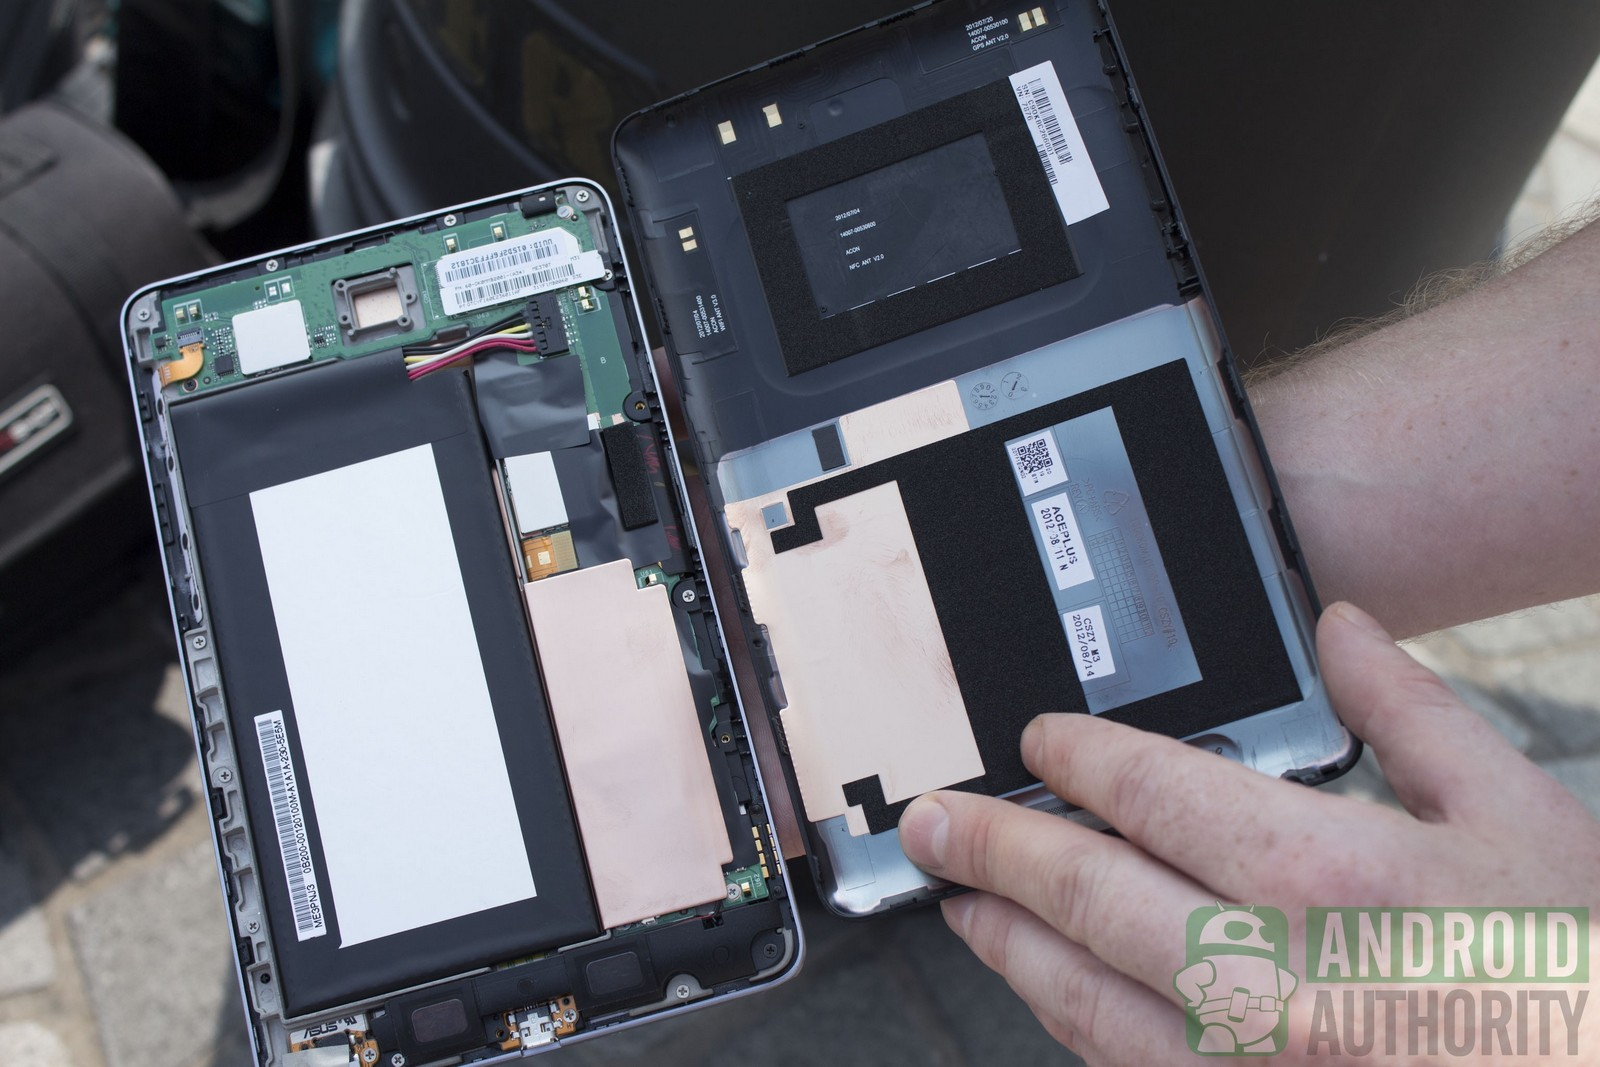 iPad mini vs. Nexus 7, crash test (Android Authority)